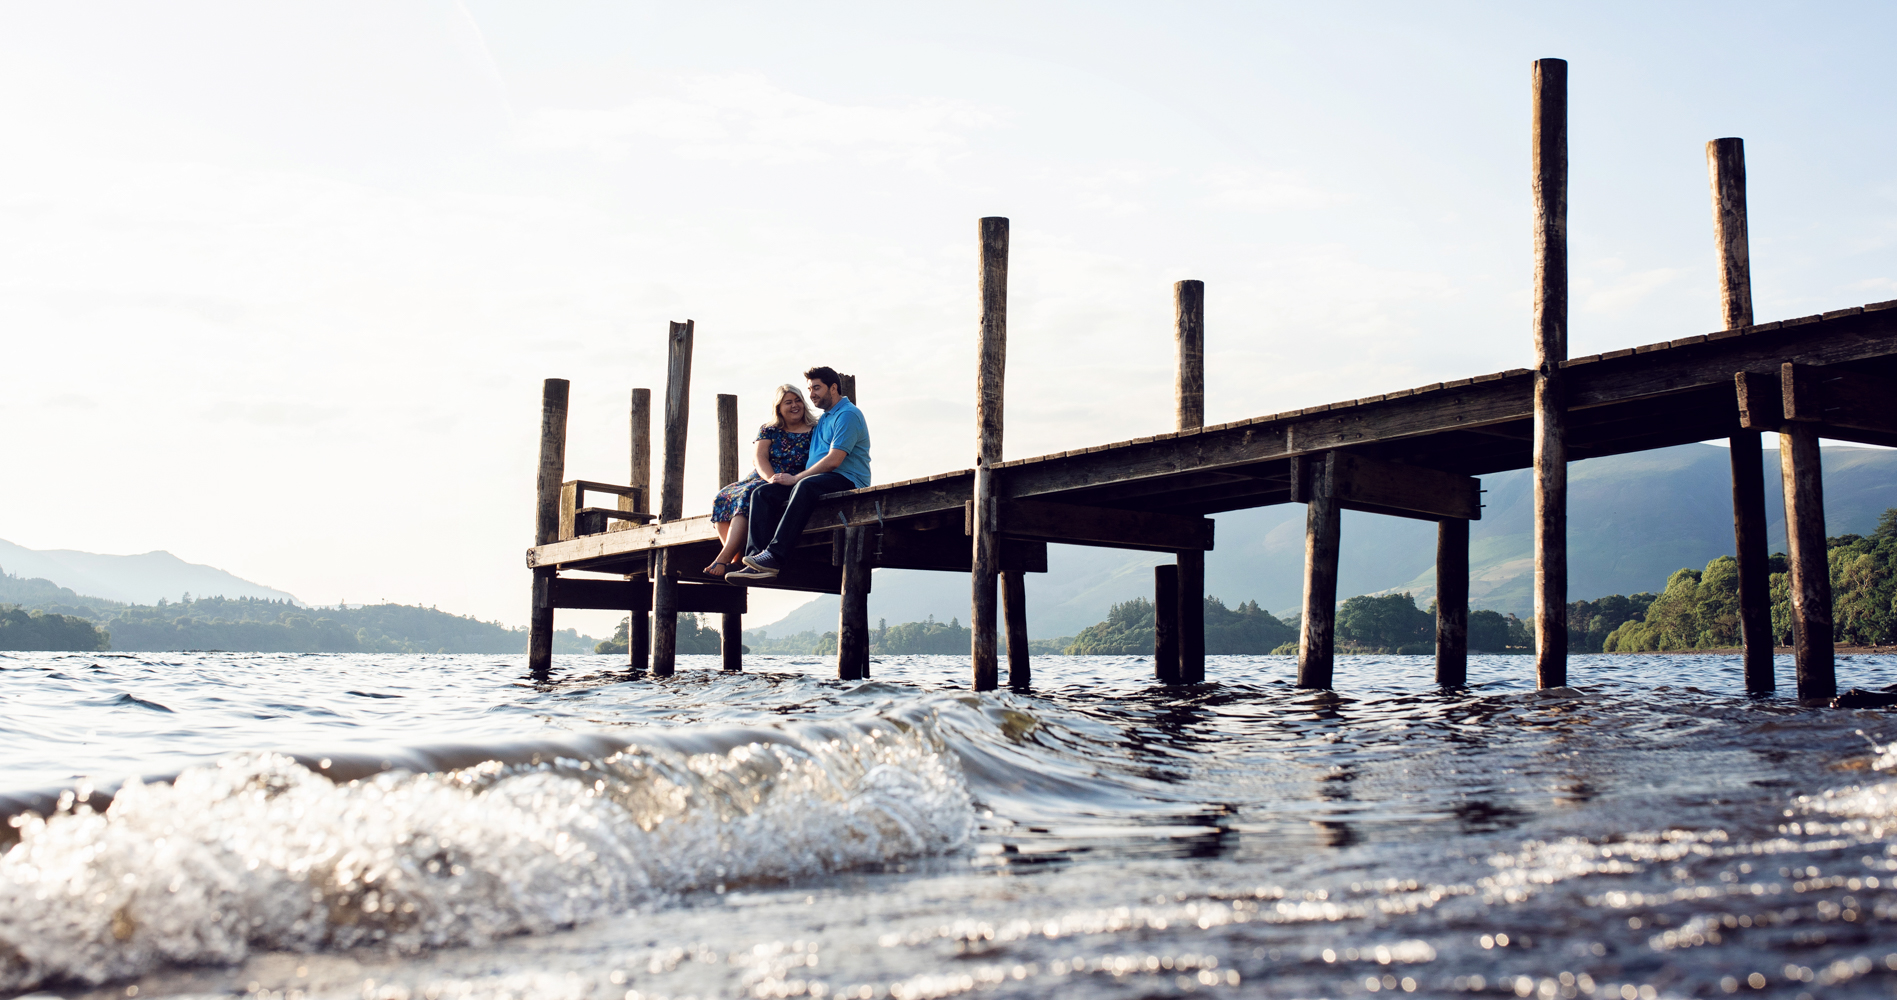 Pre shoot - A couple sitting on the pier at Ashness Bridge on the shores of Derwent water in the Lake District